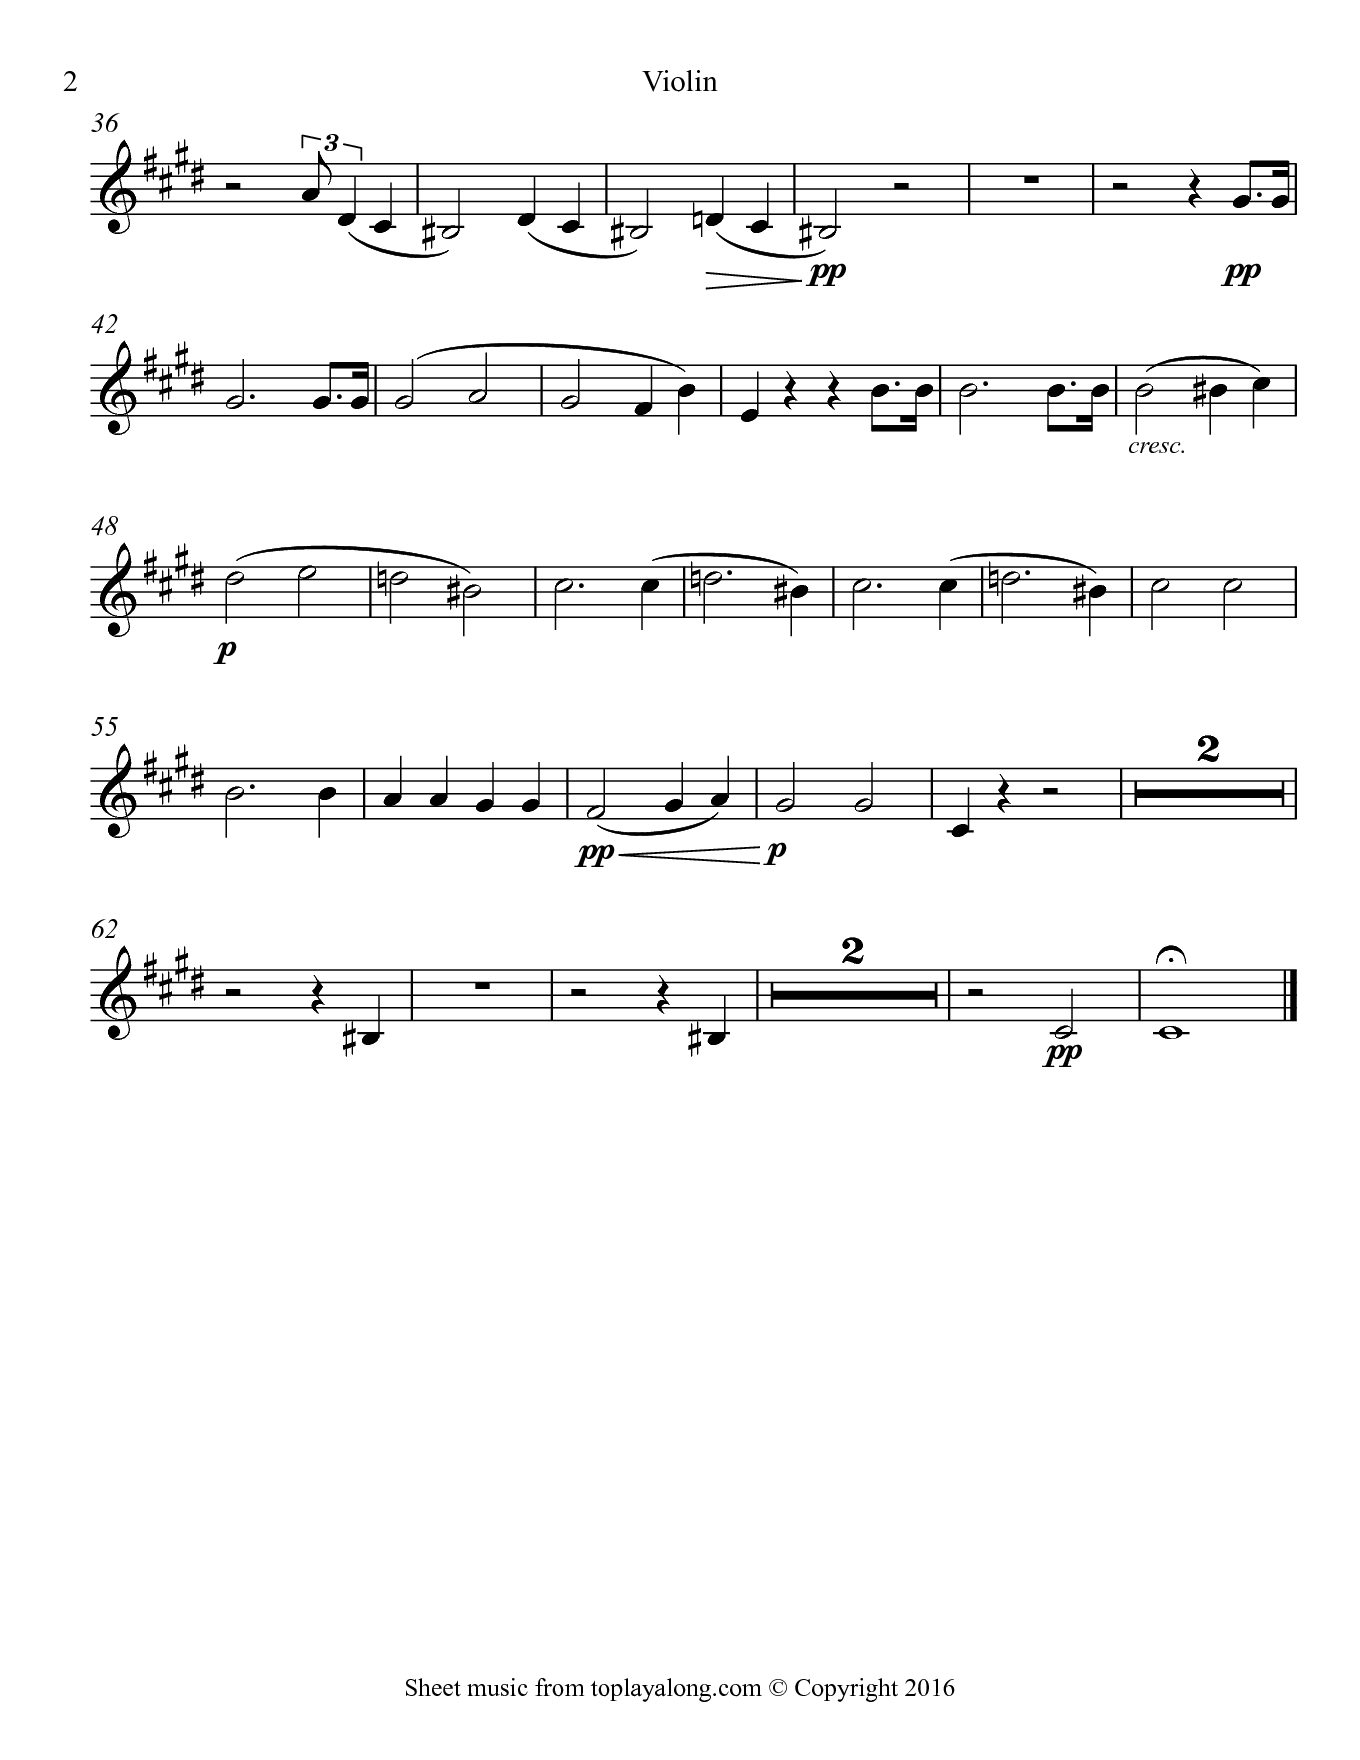 Moonlight Sonata by Beethoven. Sheet music for Violin, page 2.